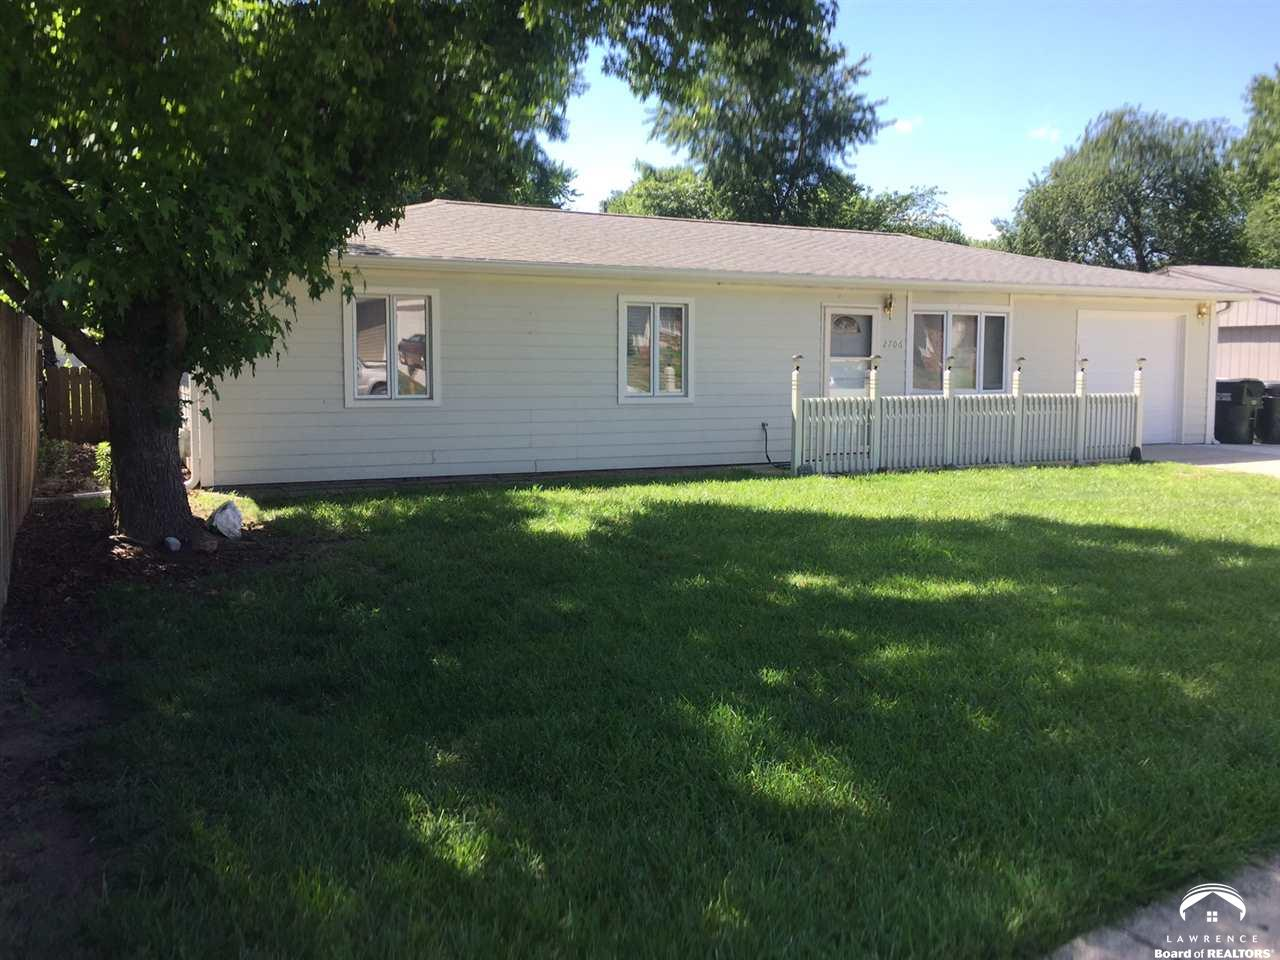 2706 Ponderosa, Lawrence, KS 66046